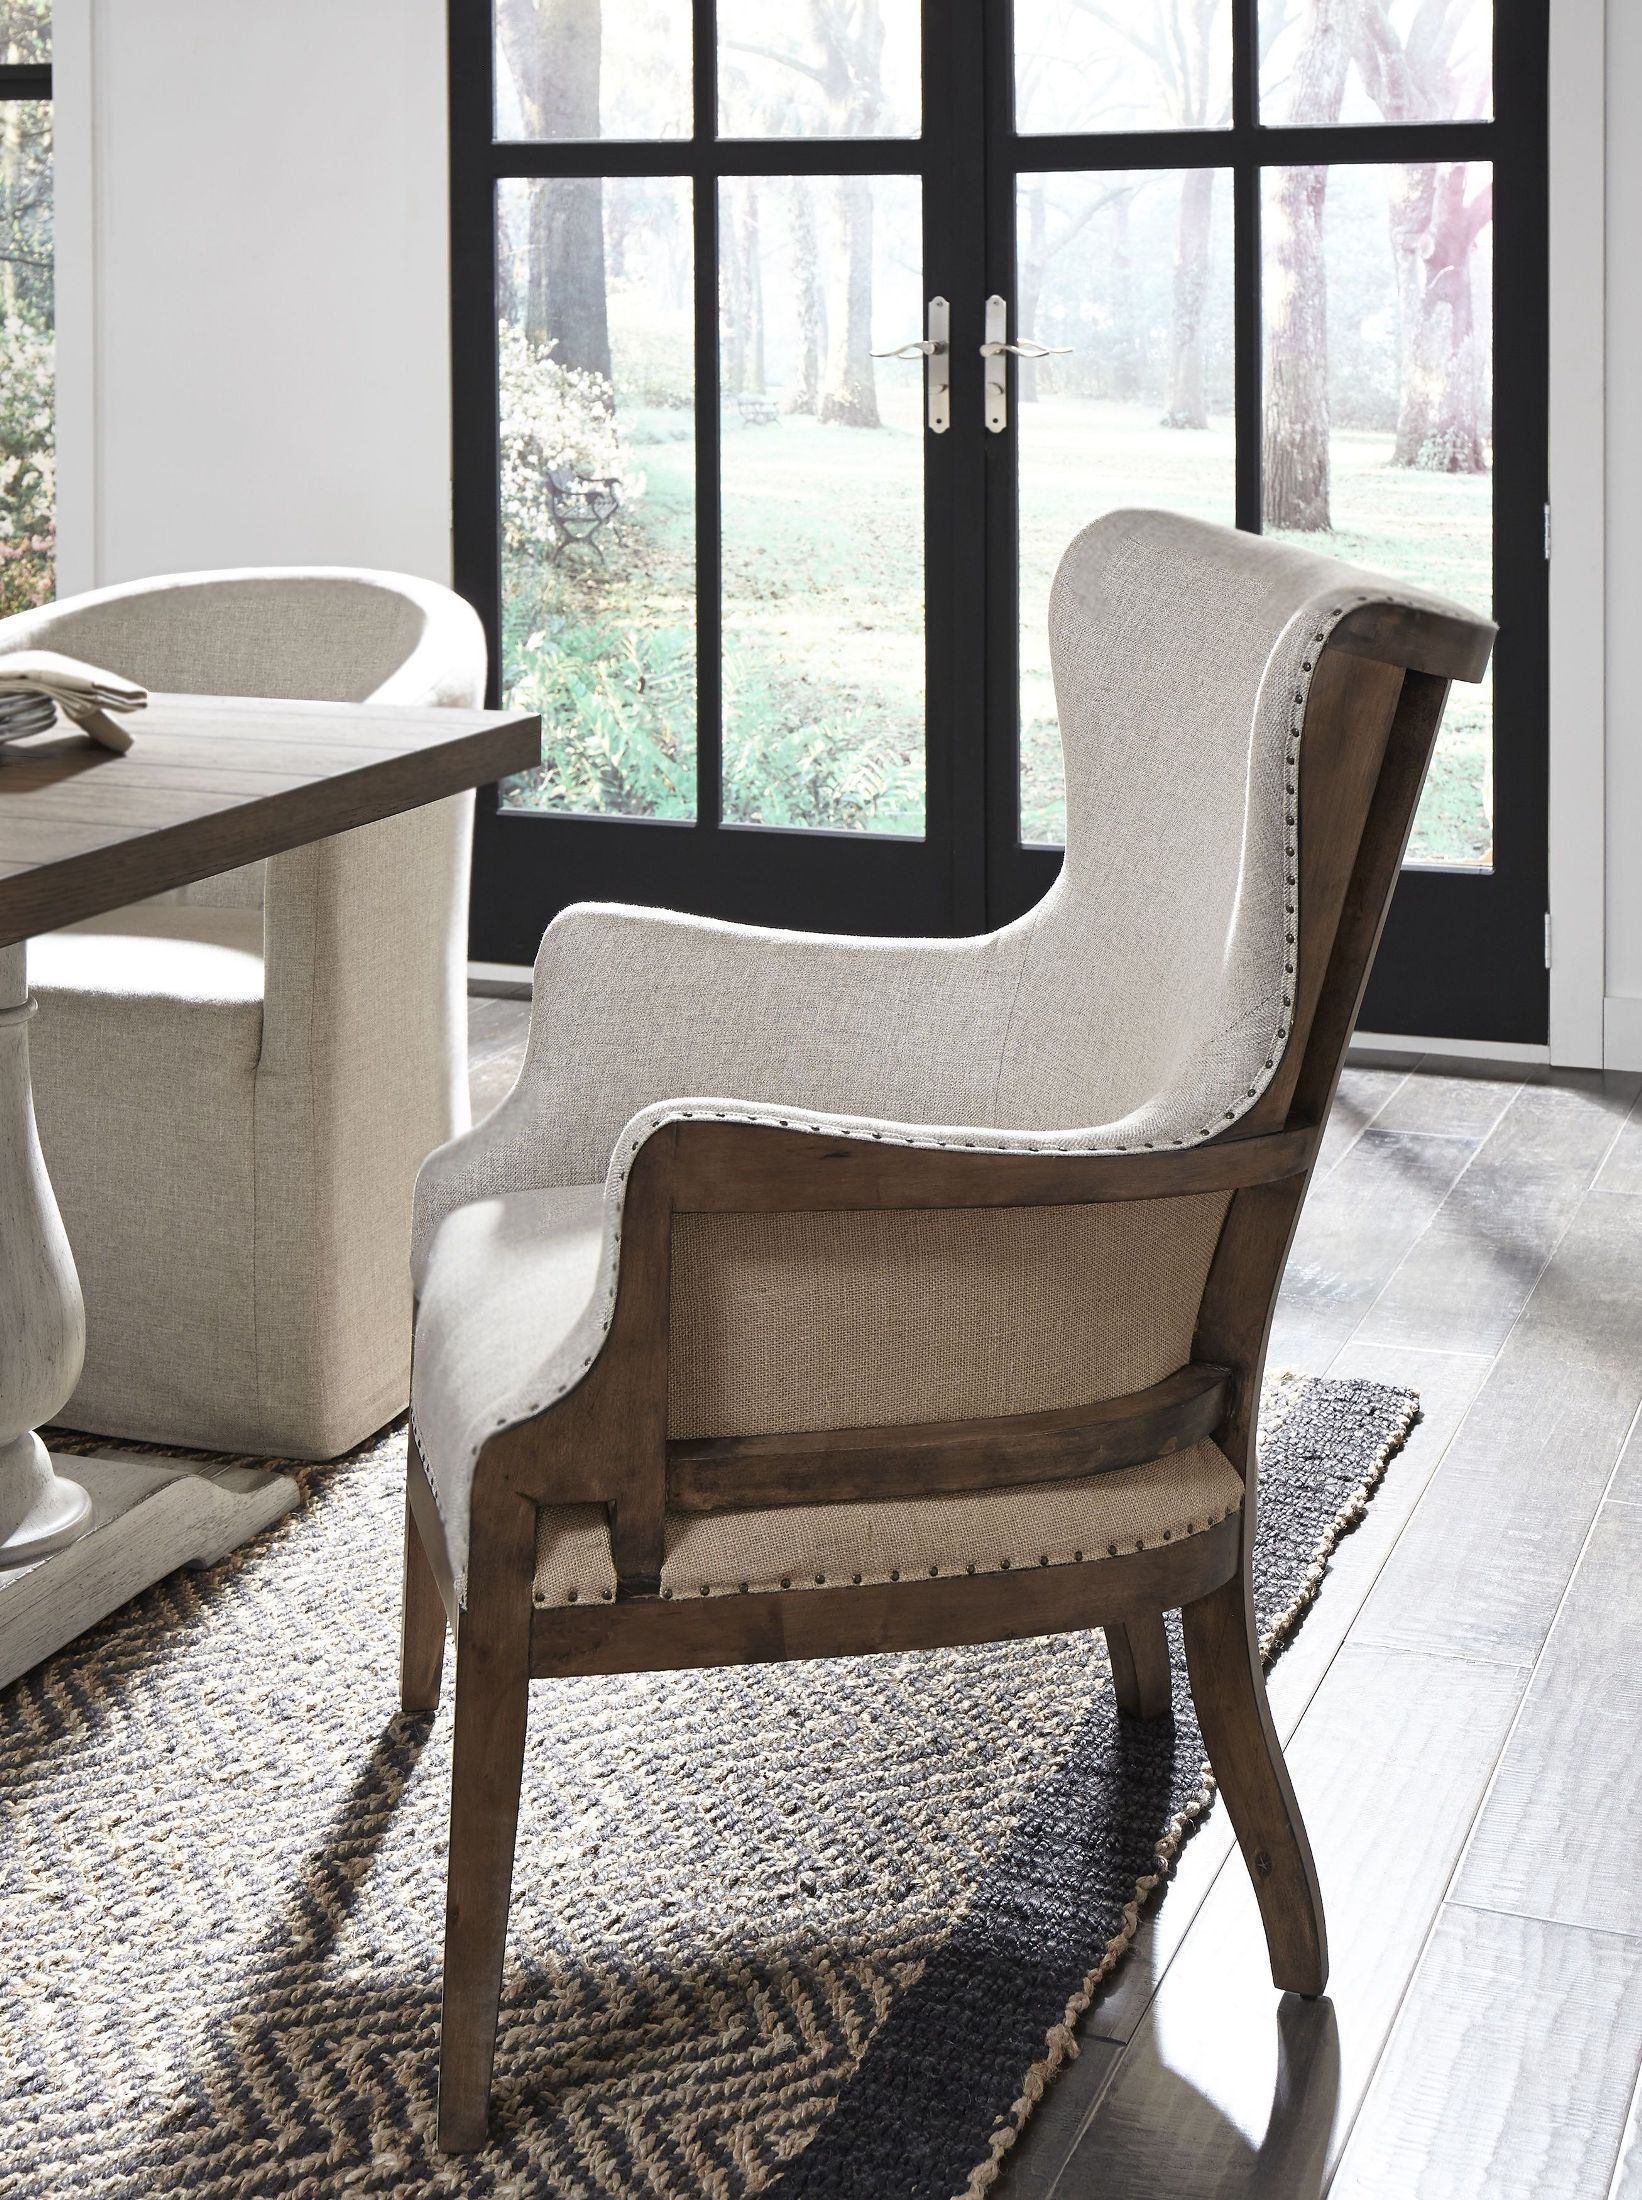 Off White Linen Curved Back Arm Chair Furniture, Side